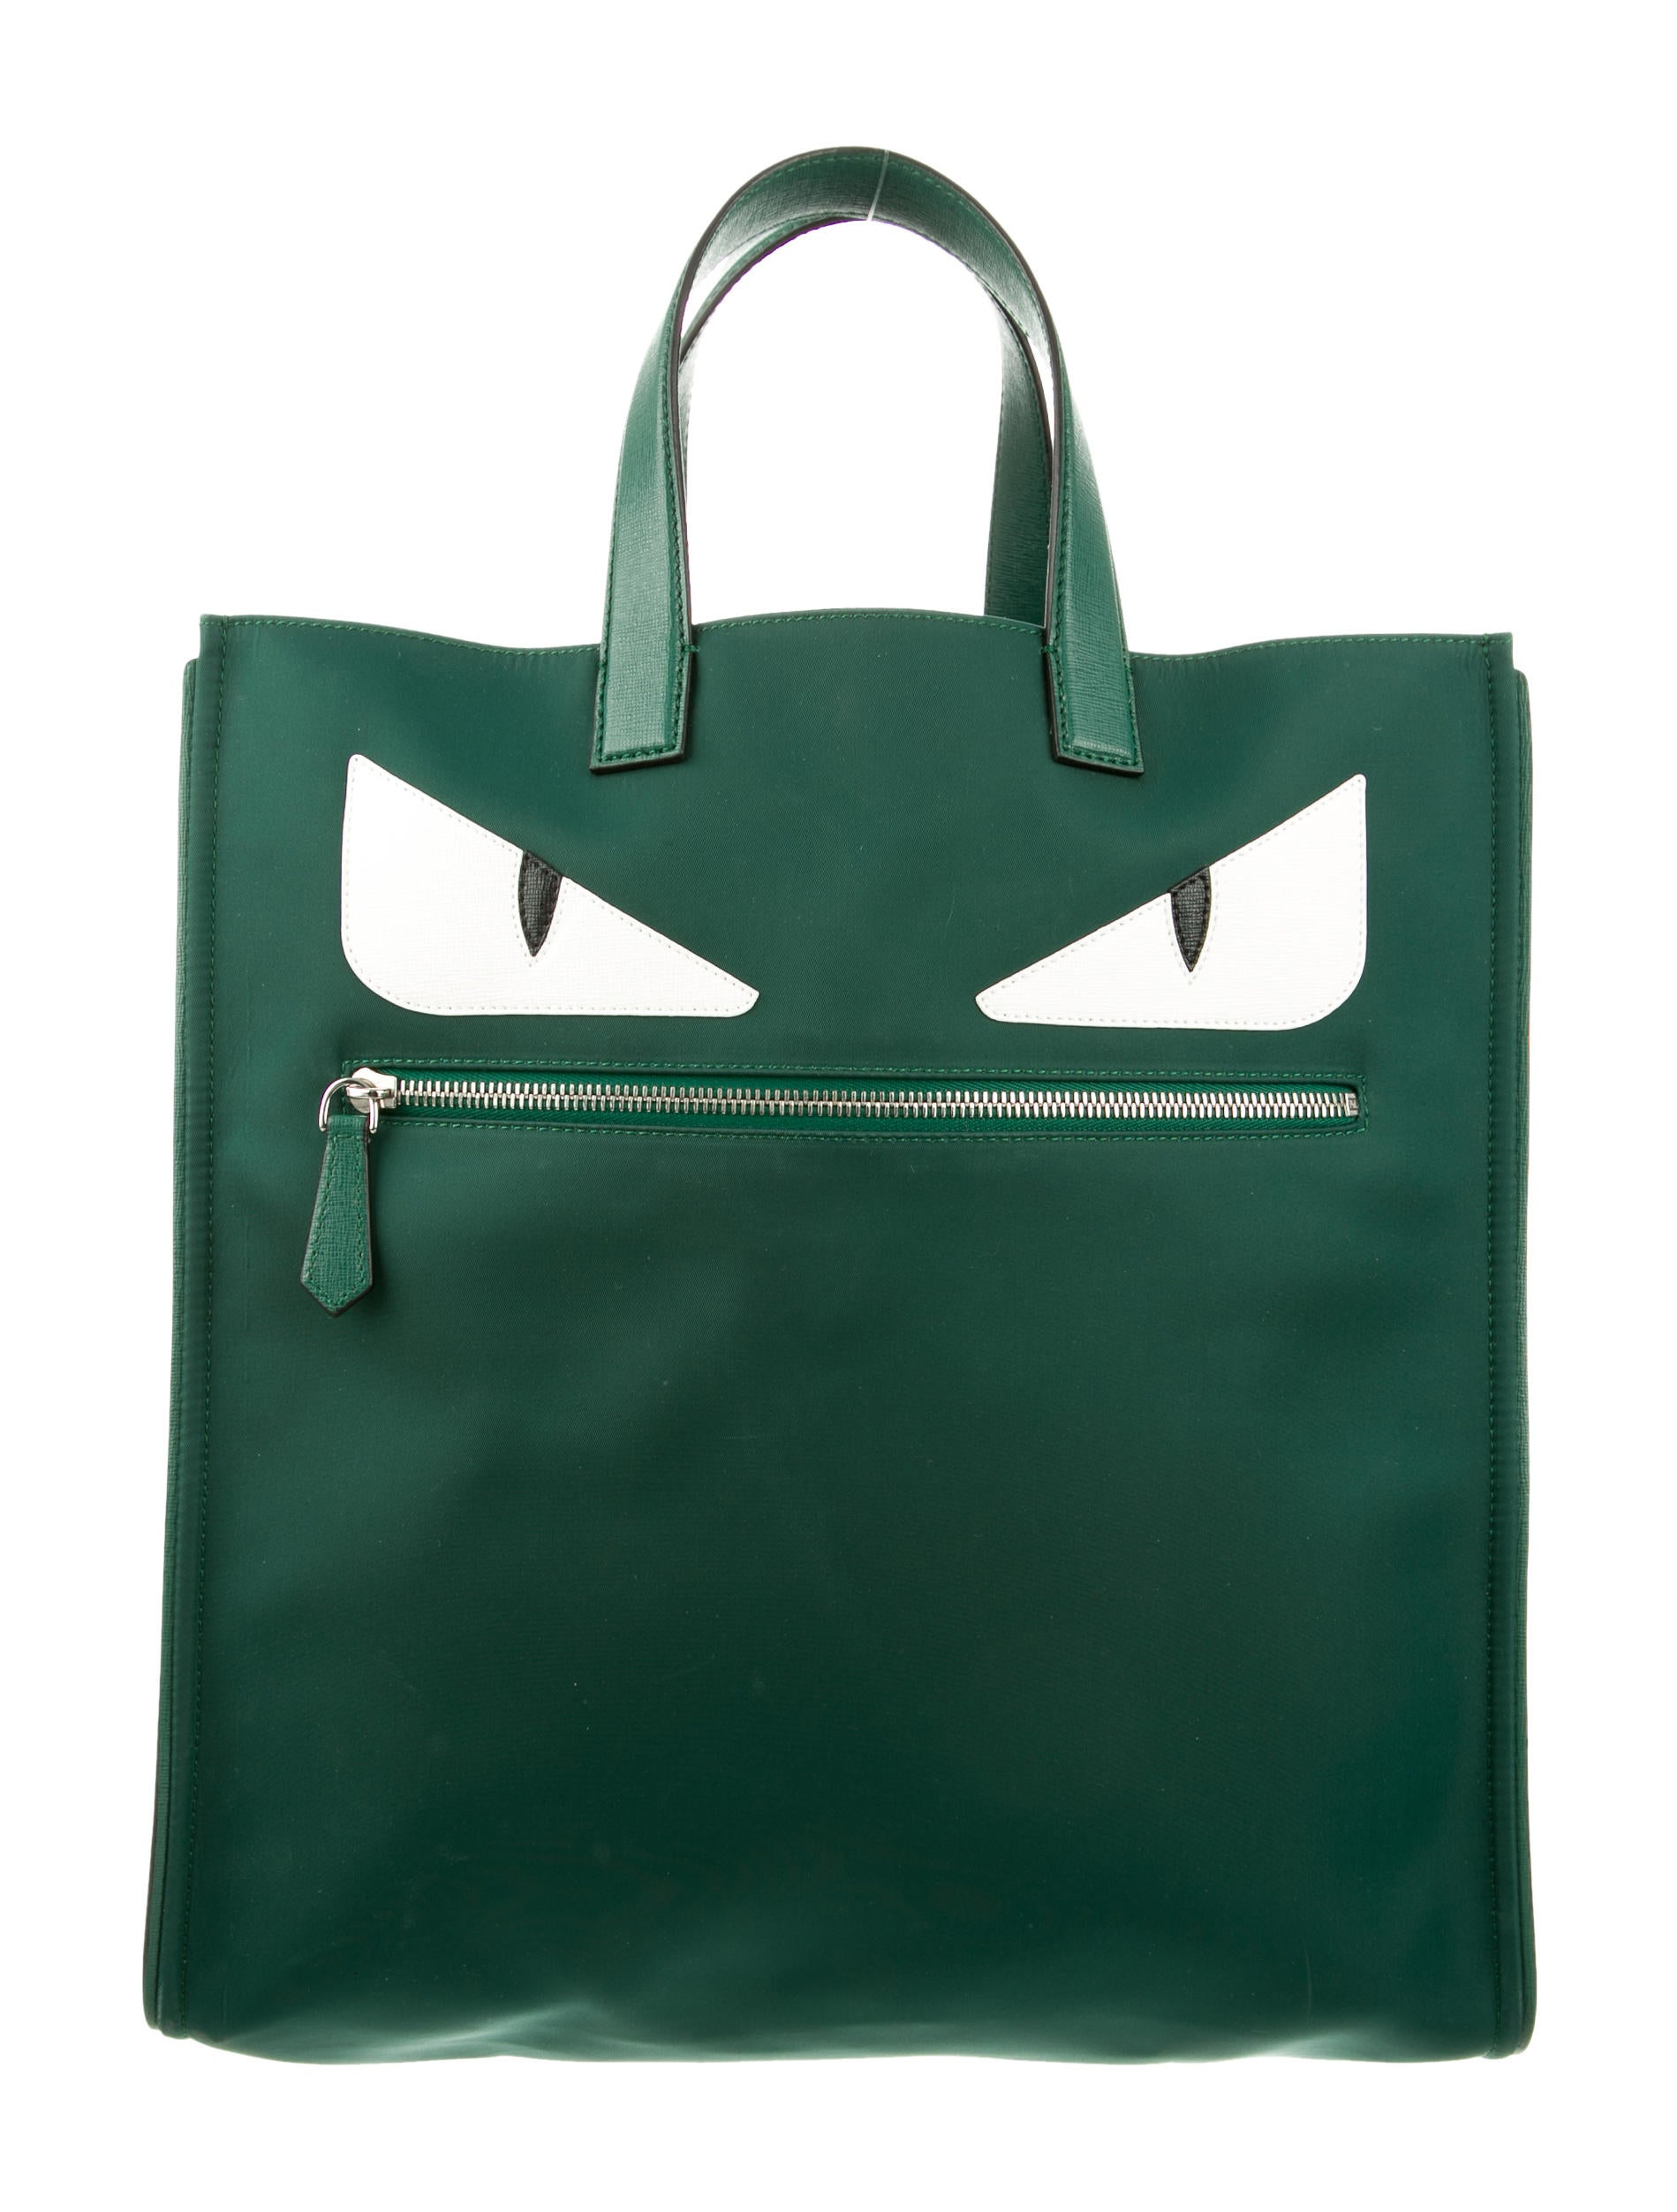 Fendi Monster Tote Green